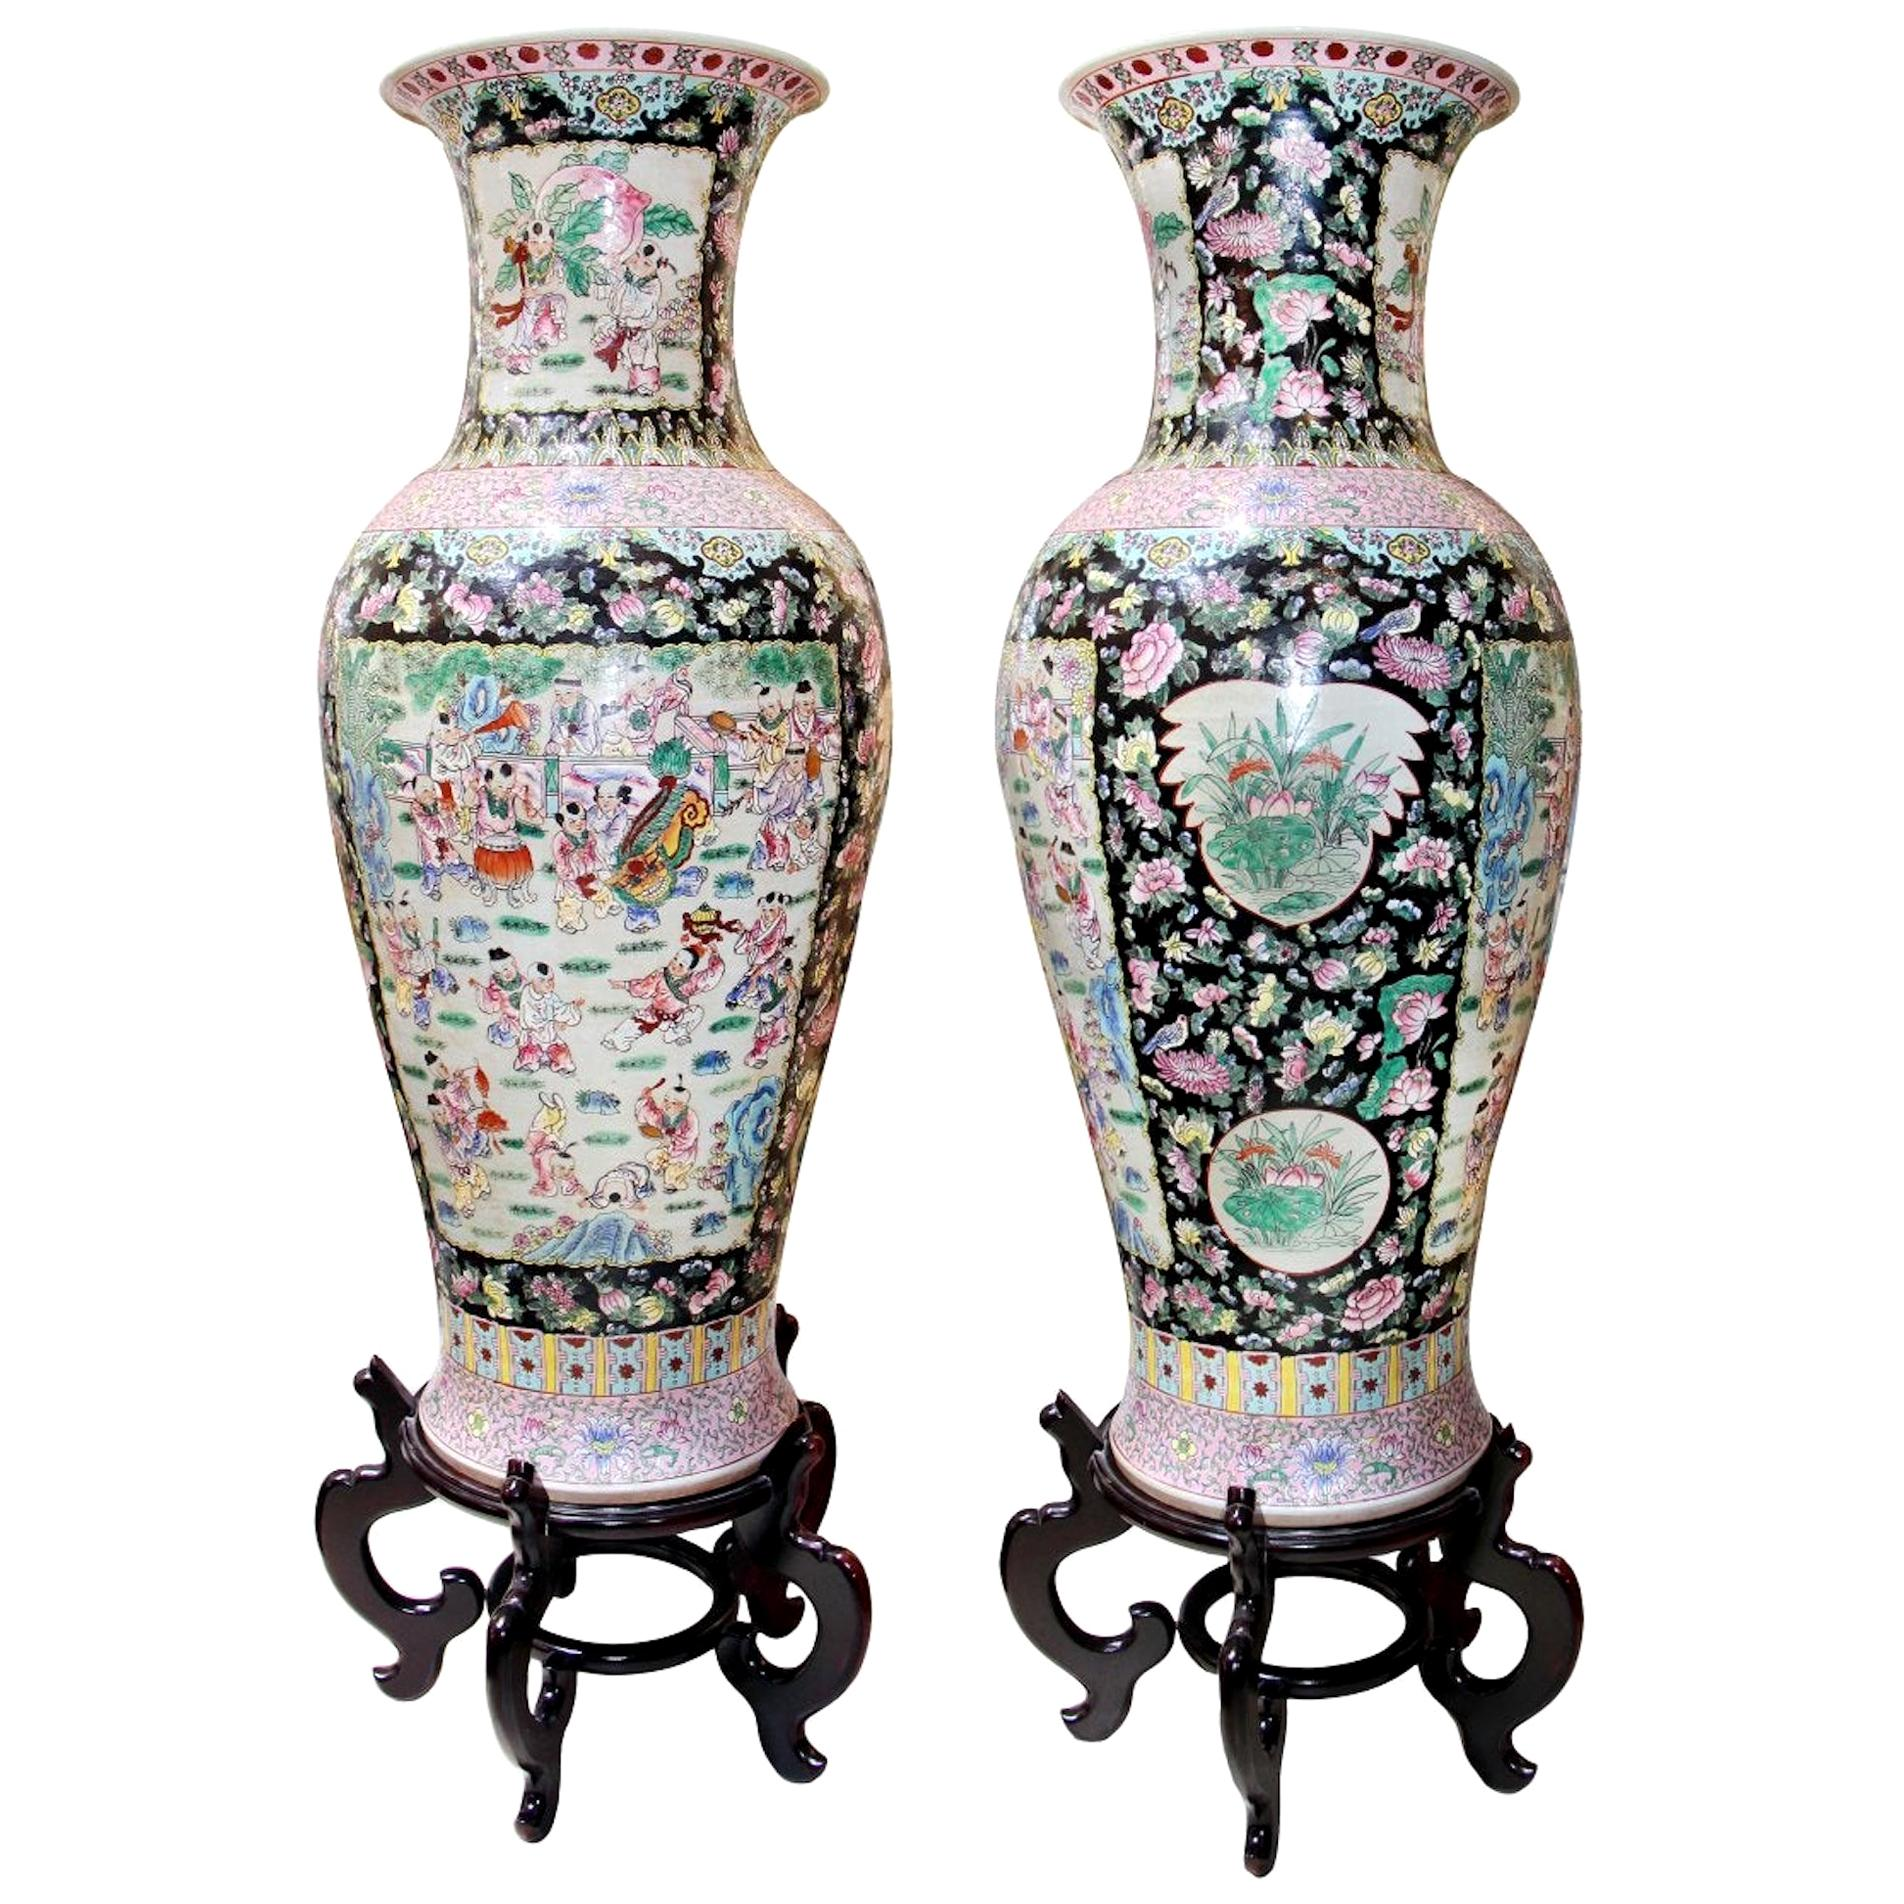 Pair of Very Large Chinese Famille-Noir Porcelain Vases